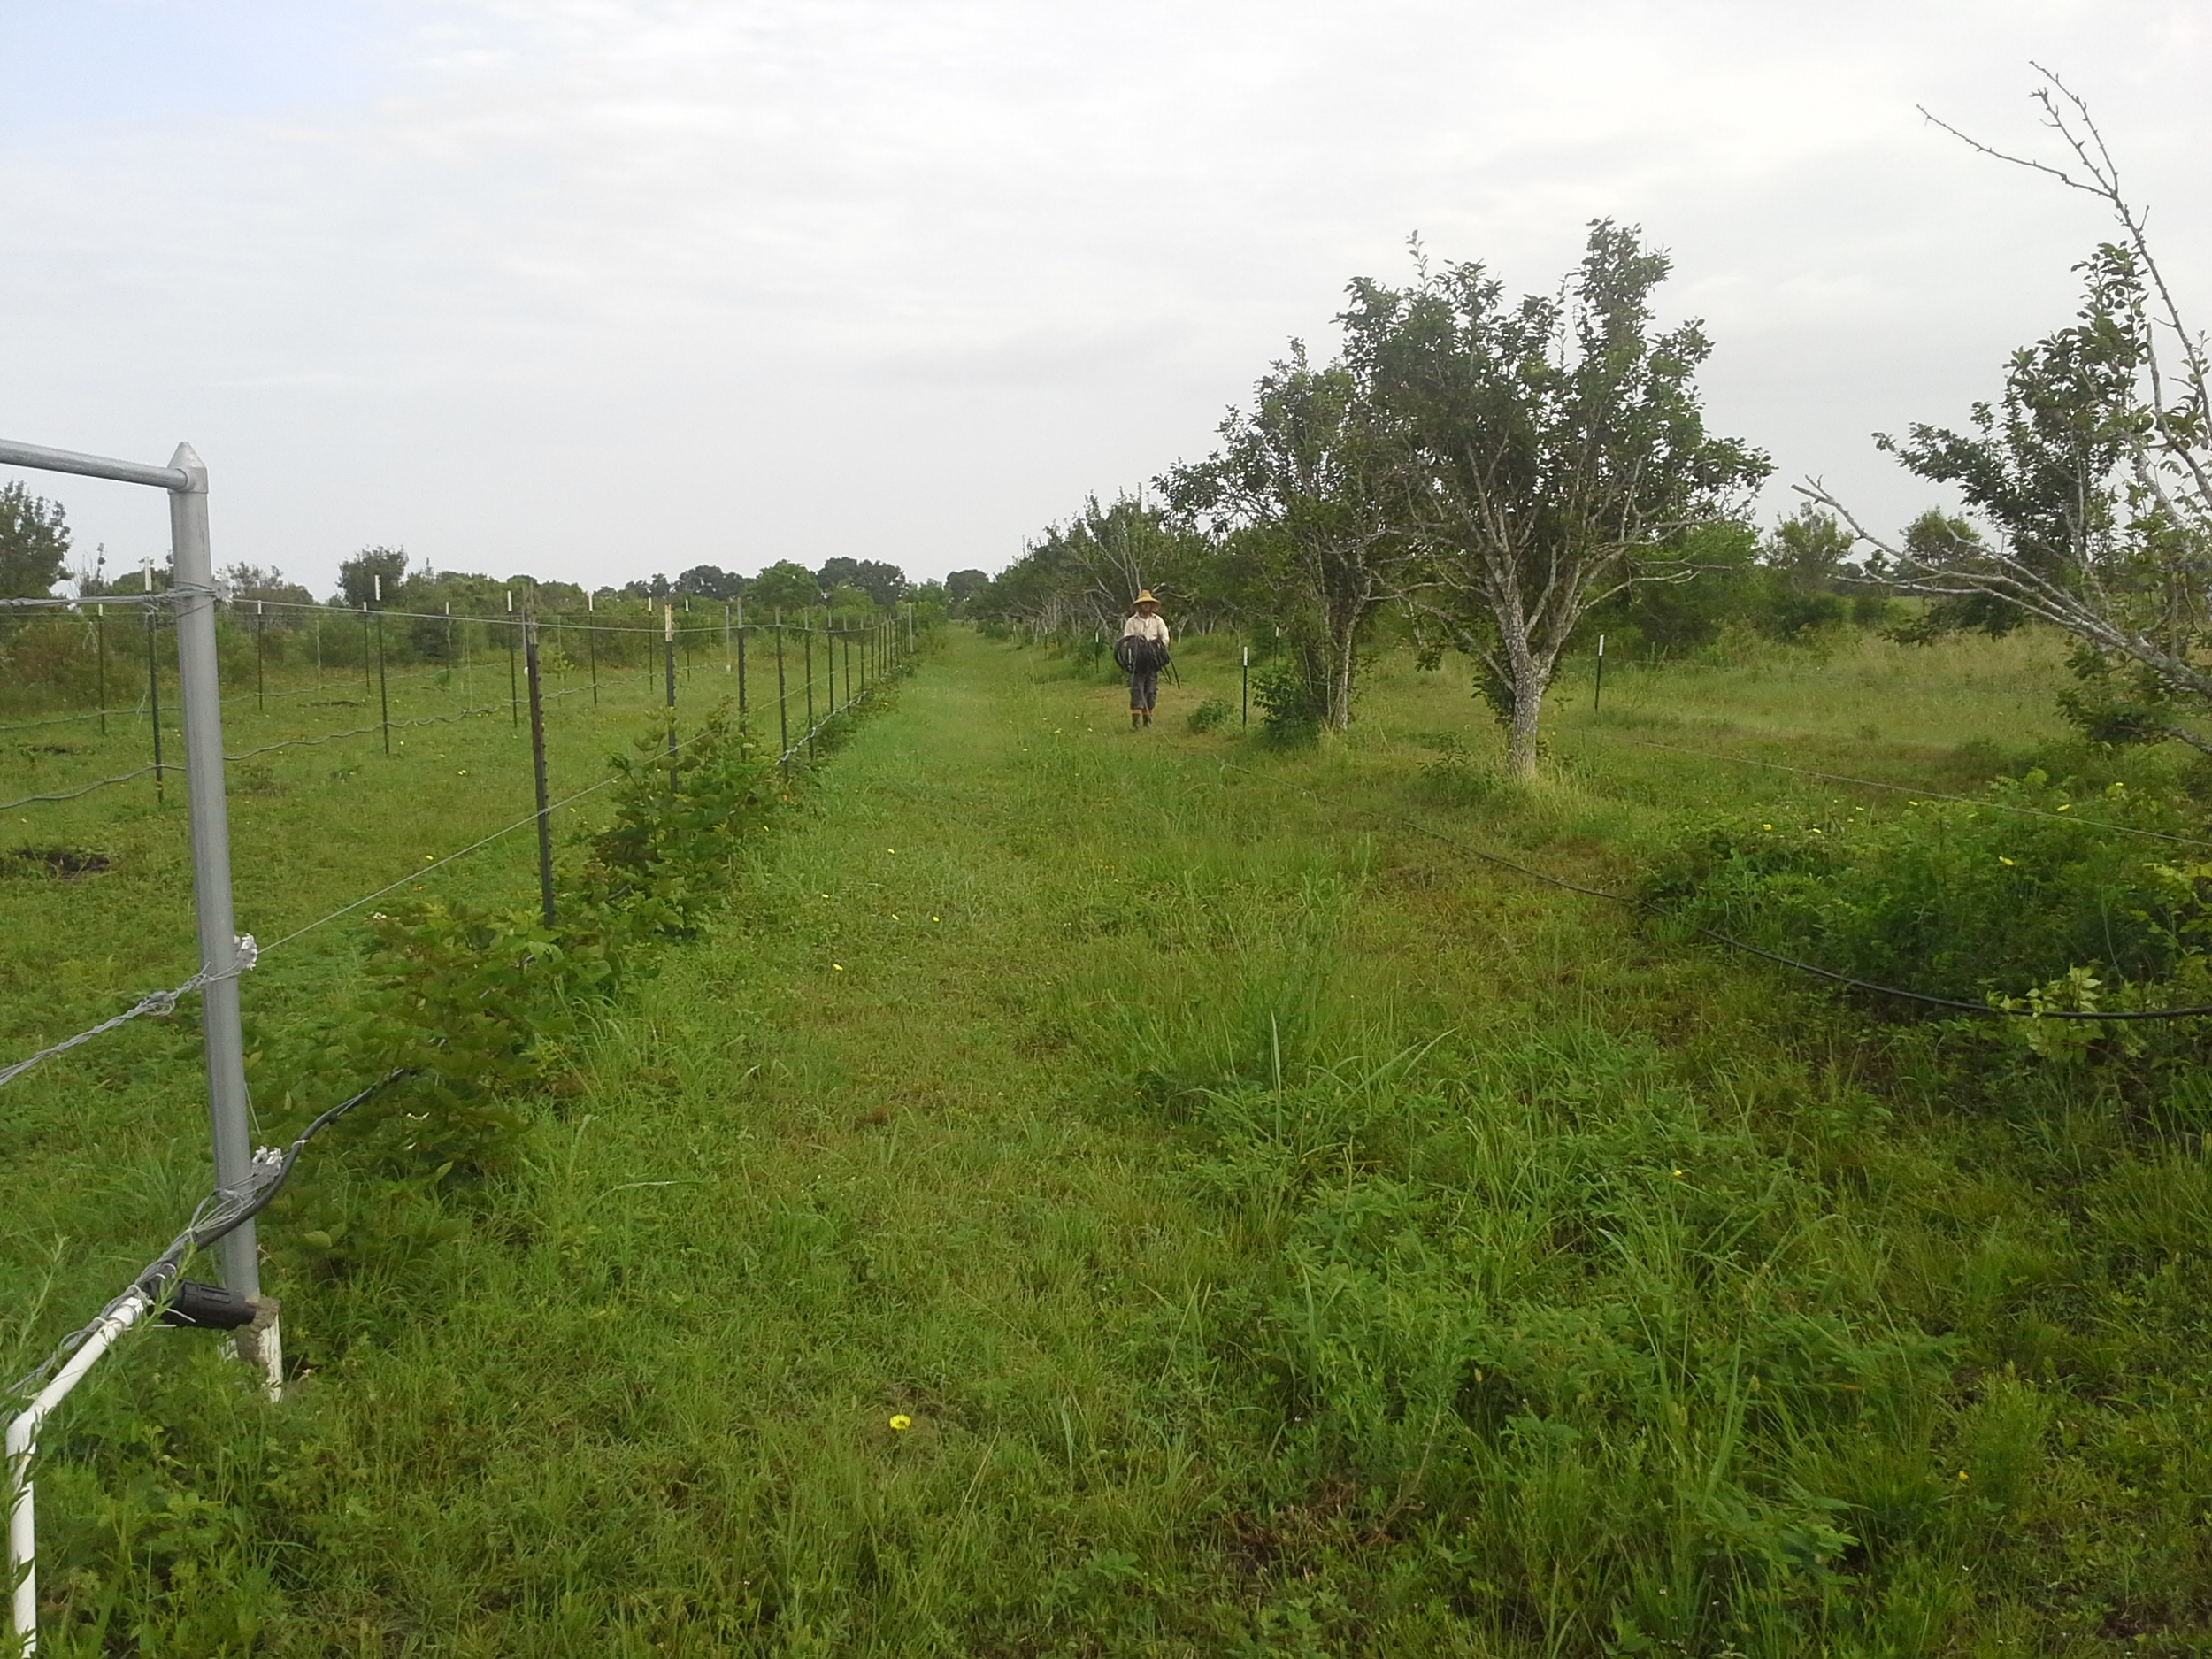 McFarmer running irrigation lines through one of the pear rows in the orchard. To the left are the blackberries.